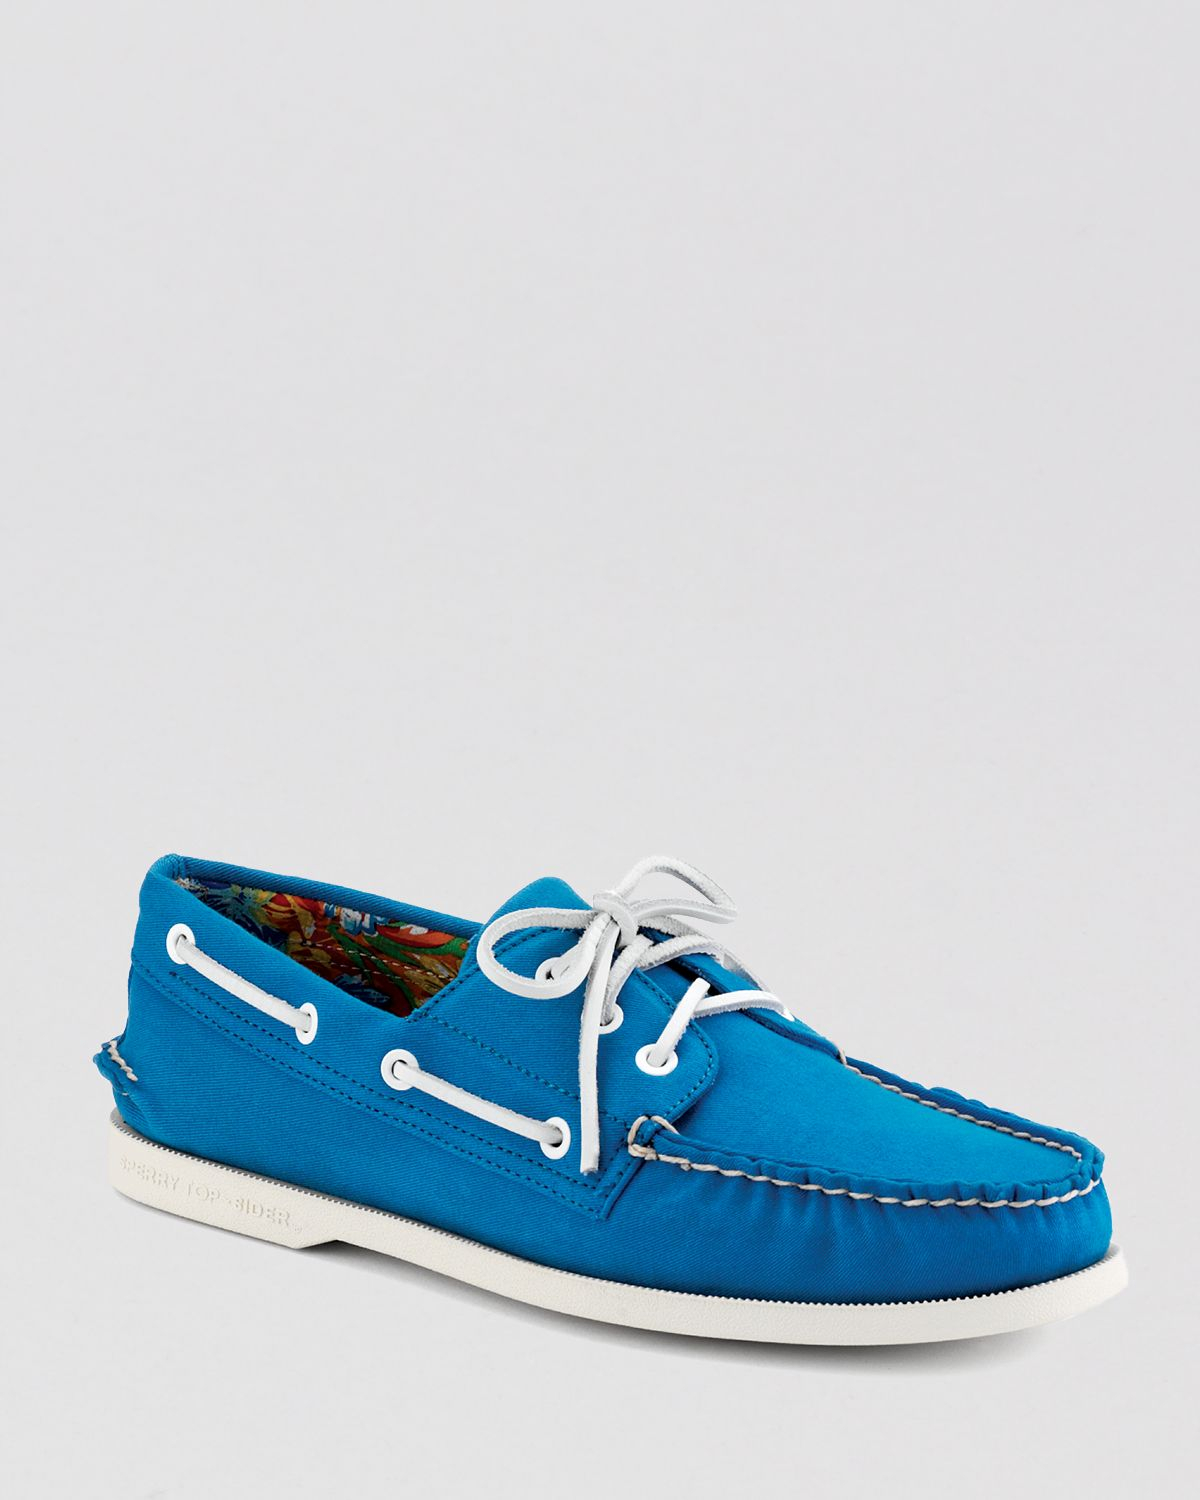 sperry top sider a o 3 eye canvas boat shoes in blue for